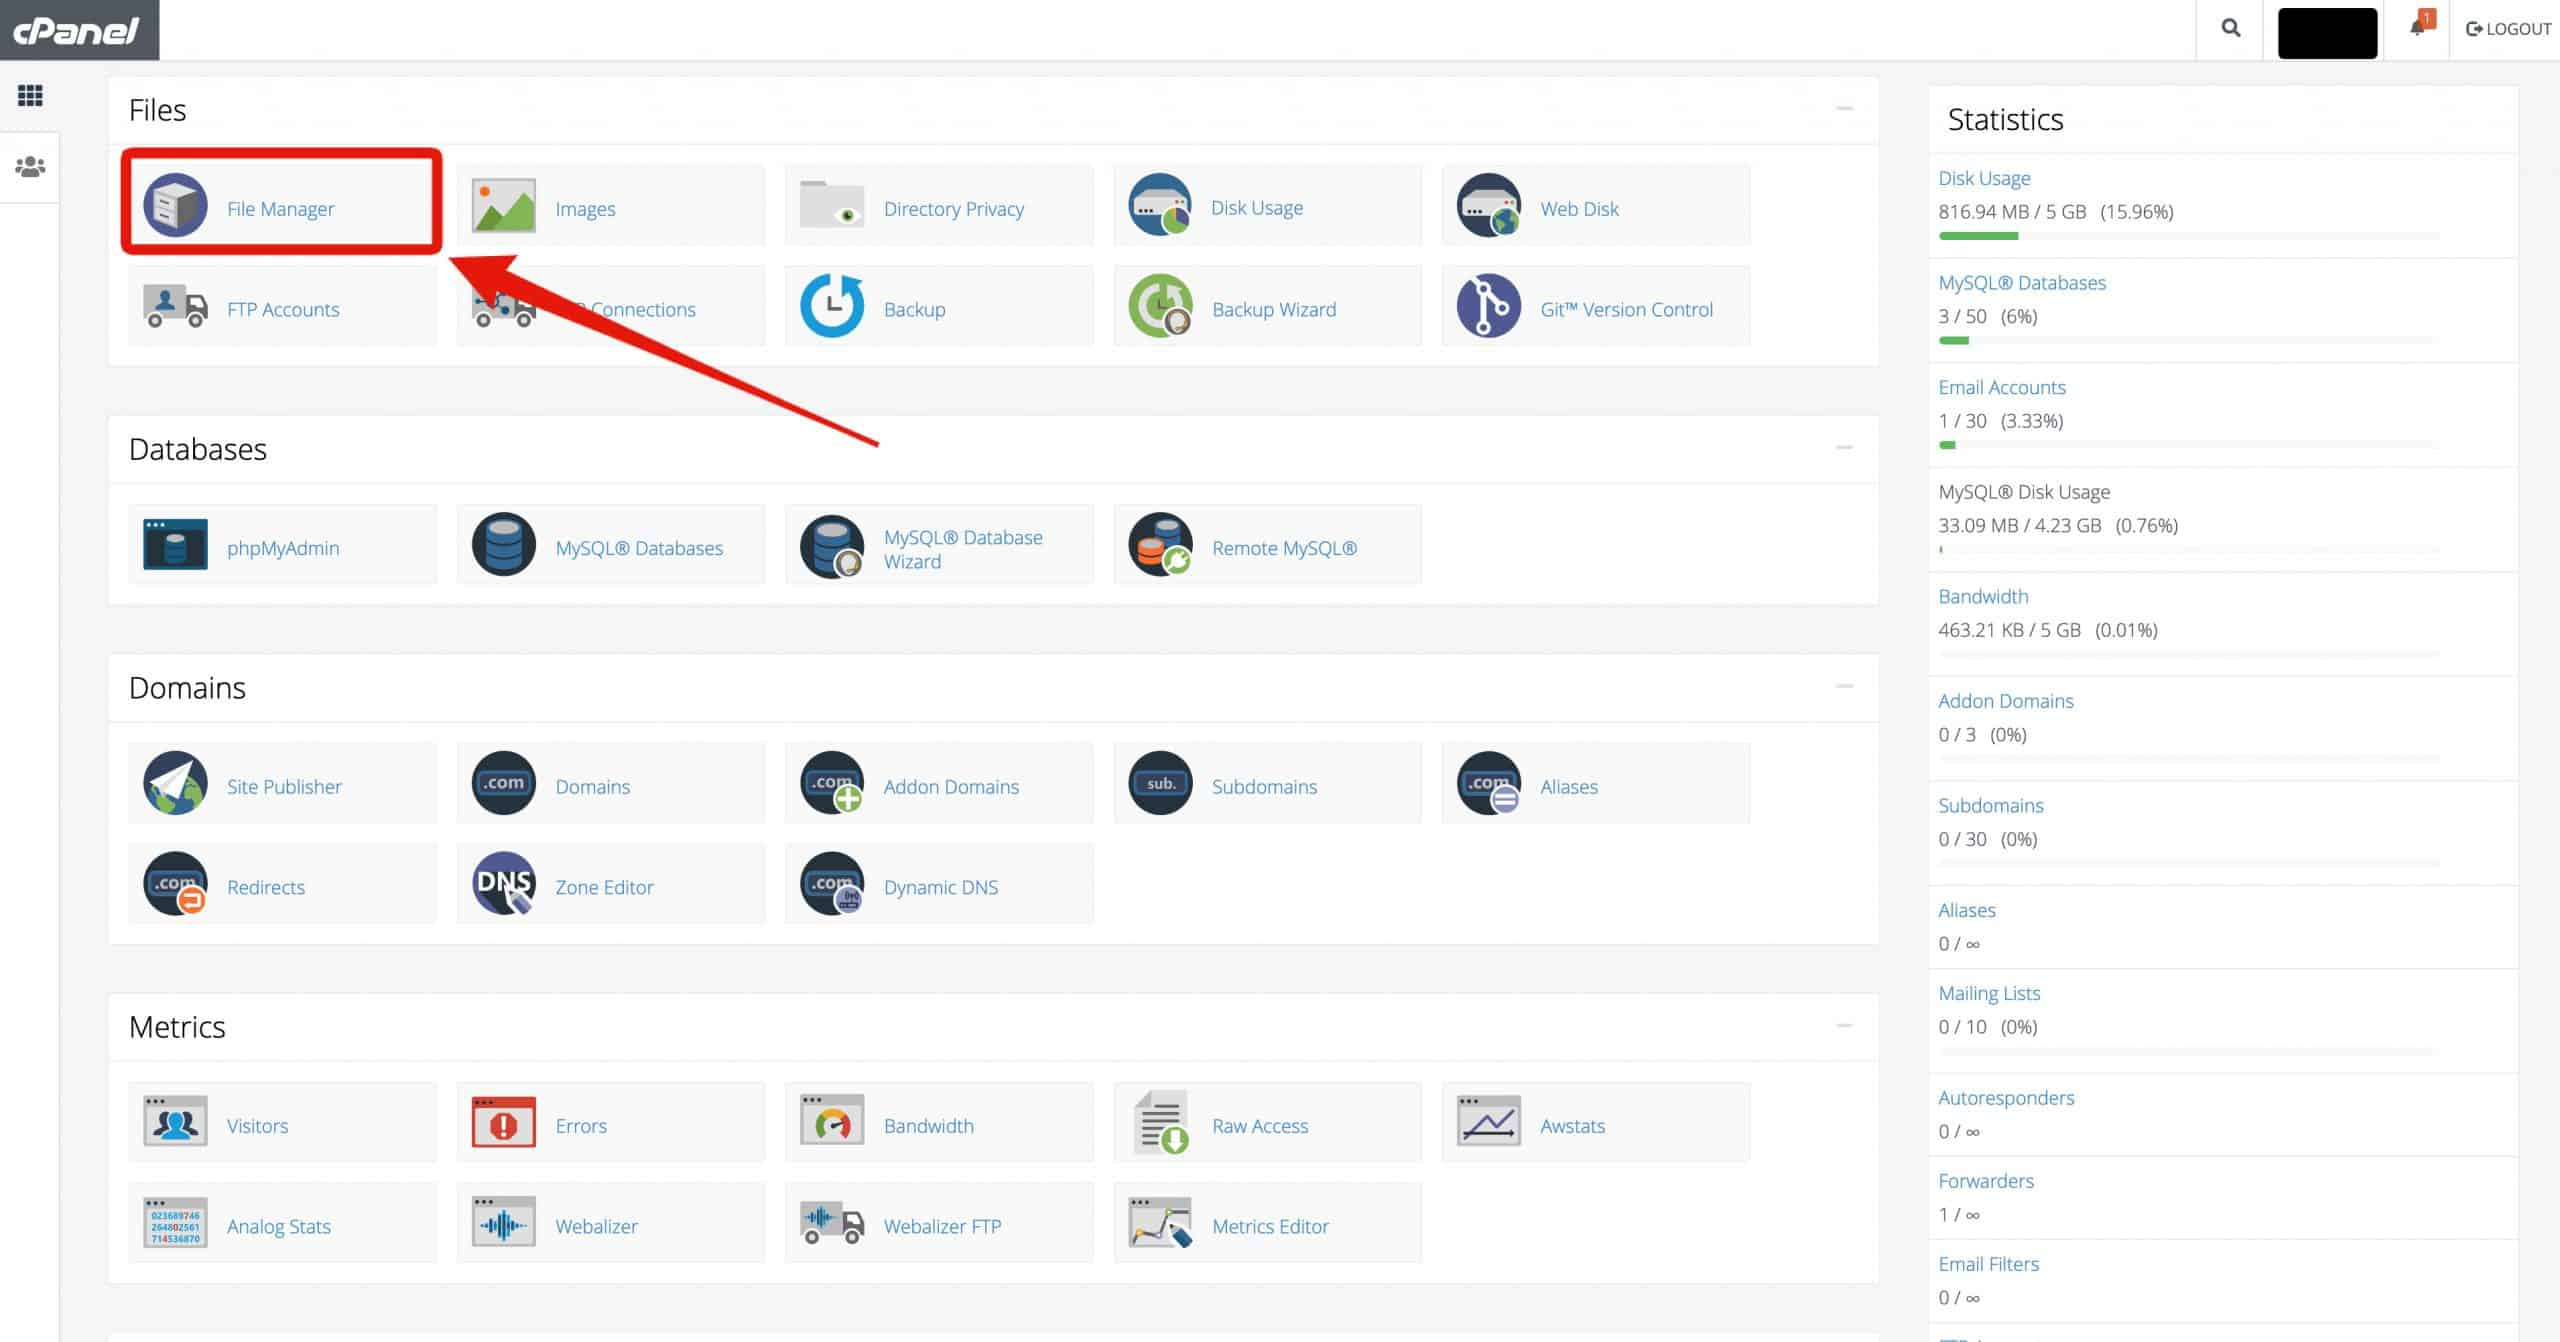 Screenshot_Locate_File_Manager_on_cPanel